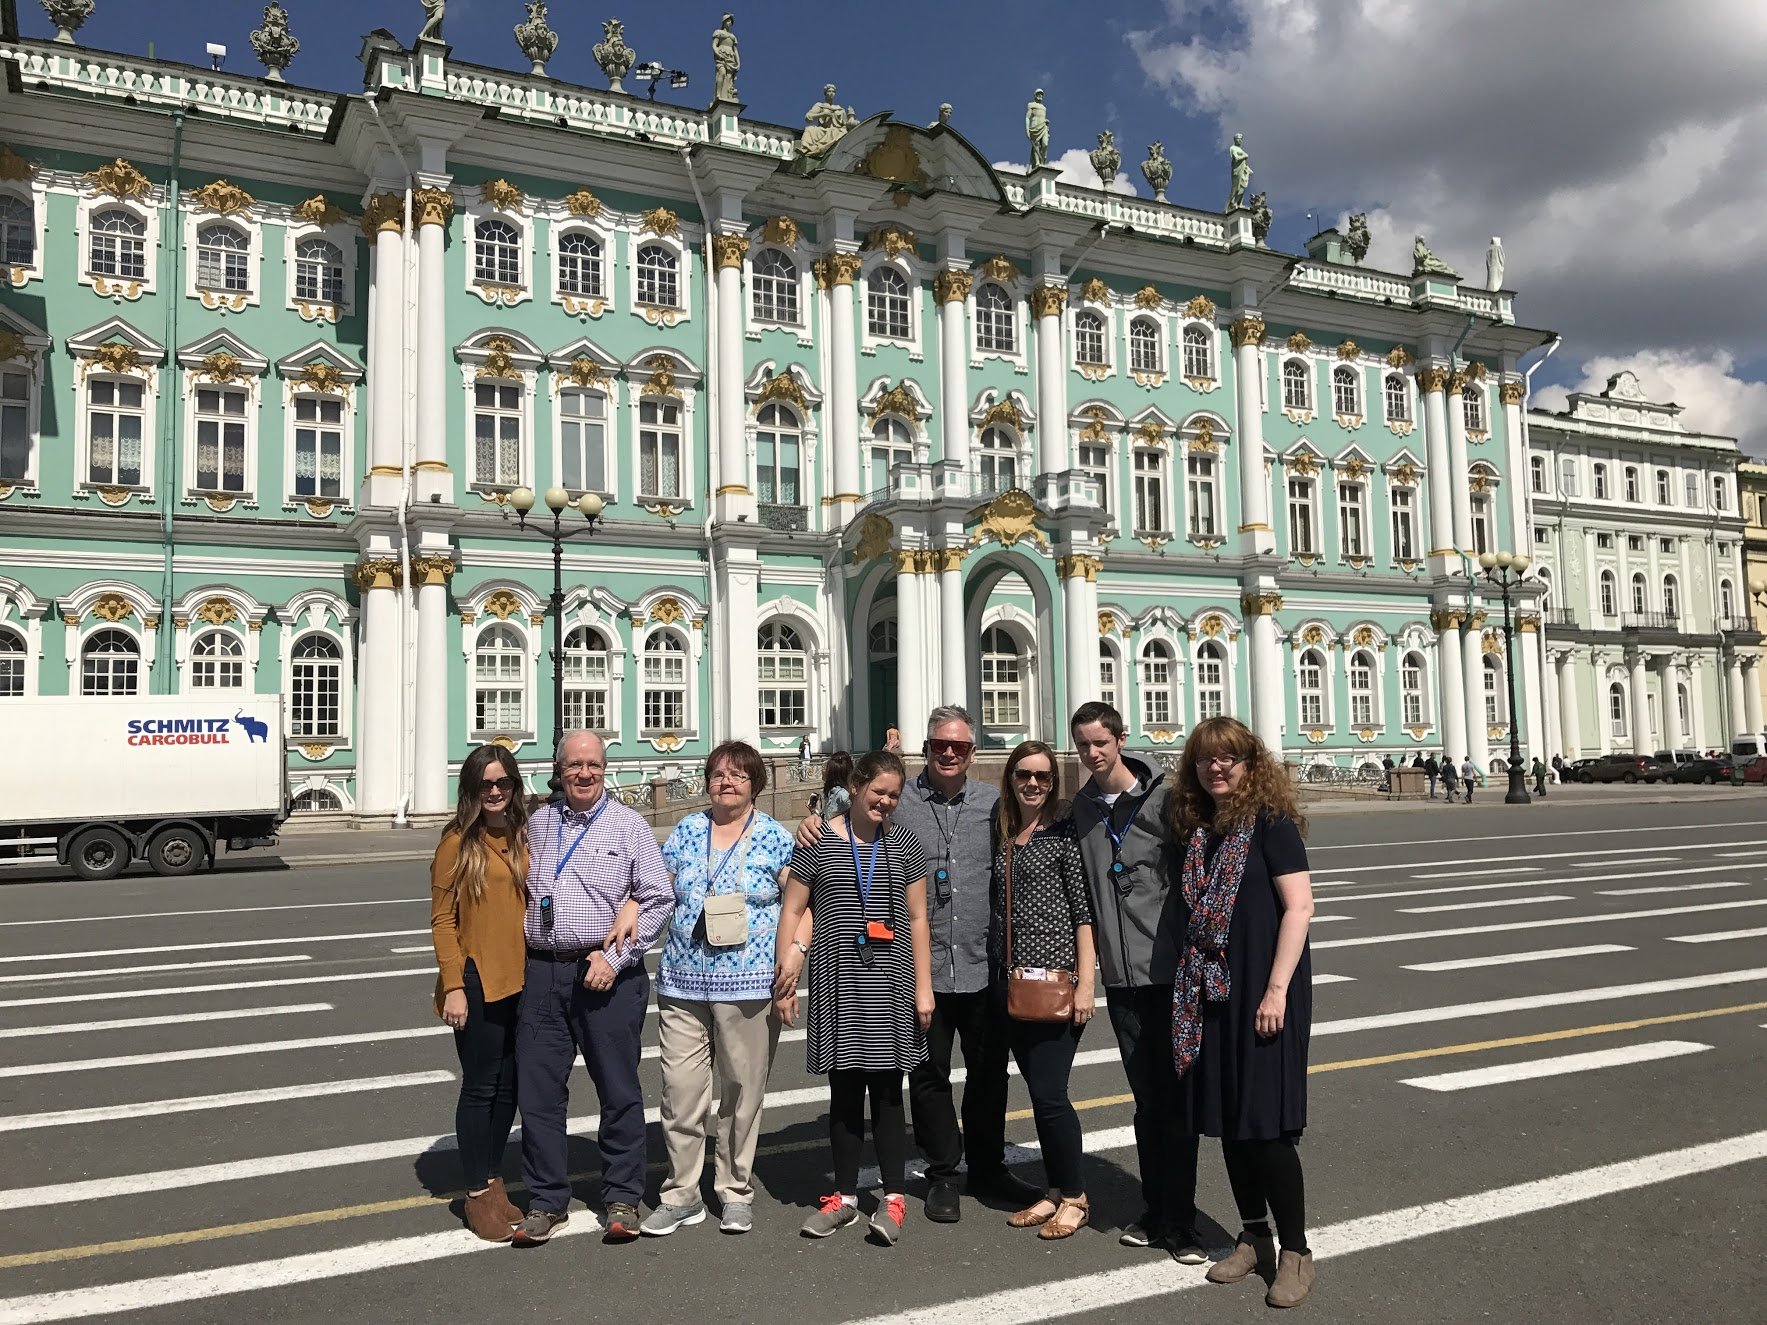 Exploring the Hermitage Museum in St. Petersburg, Russia